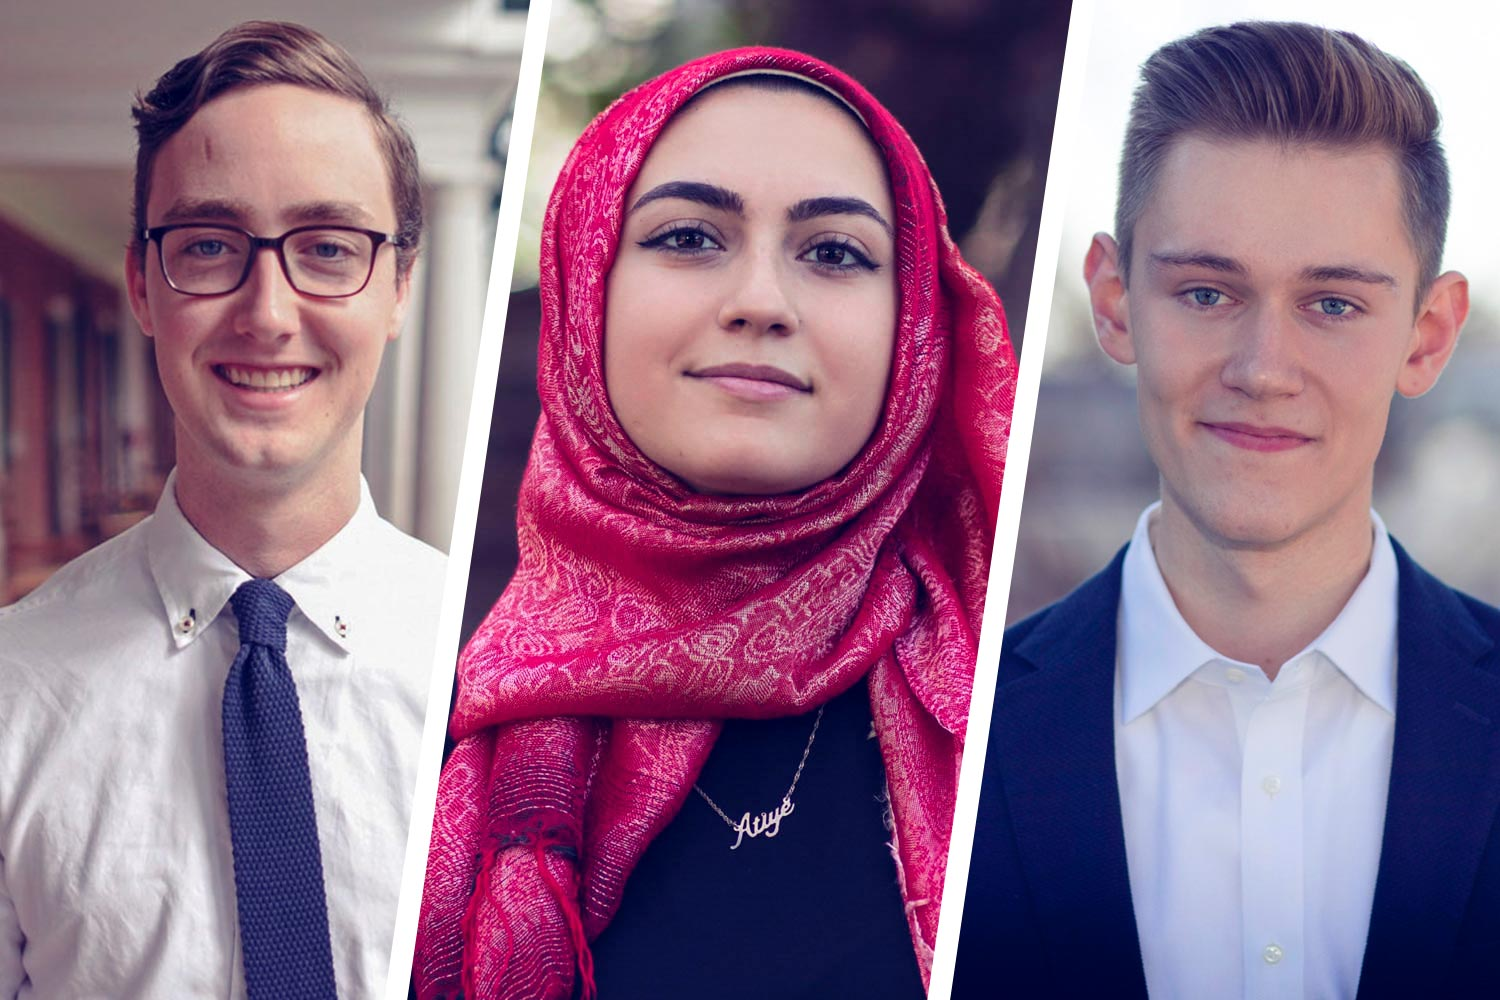 From left: 2016 graduate Porter Nenon and fourth-year students Attiya Latif and Jack Chellman will study in the United Kingdom. (Photos by Dan Addison, University Communications)